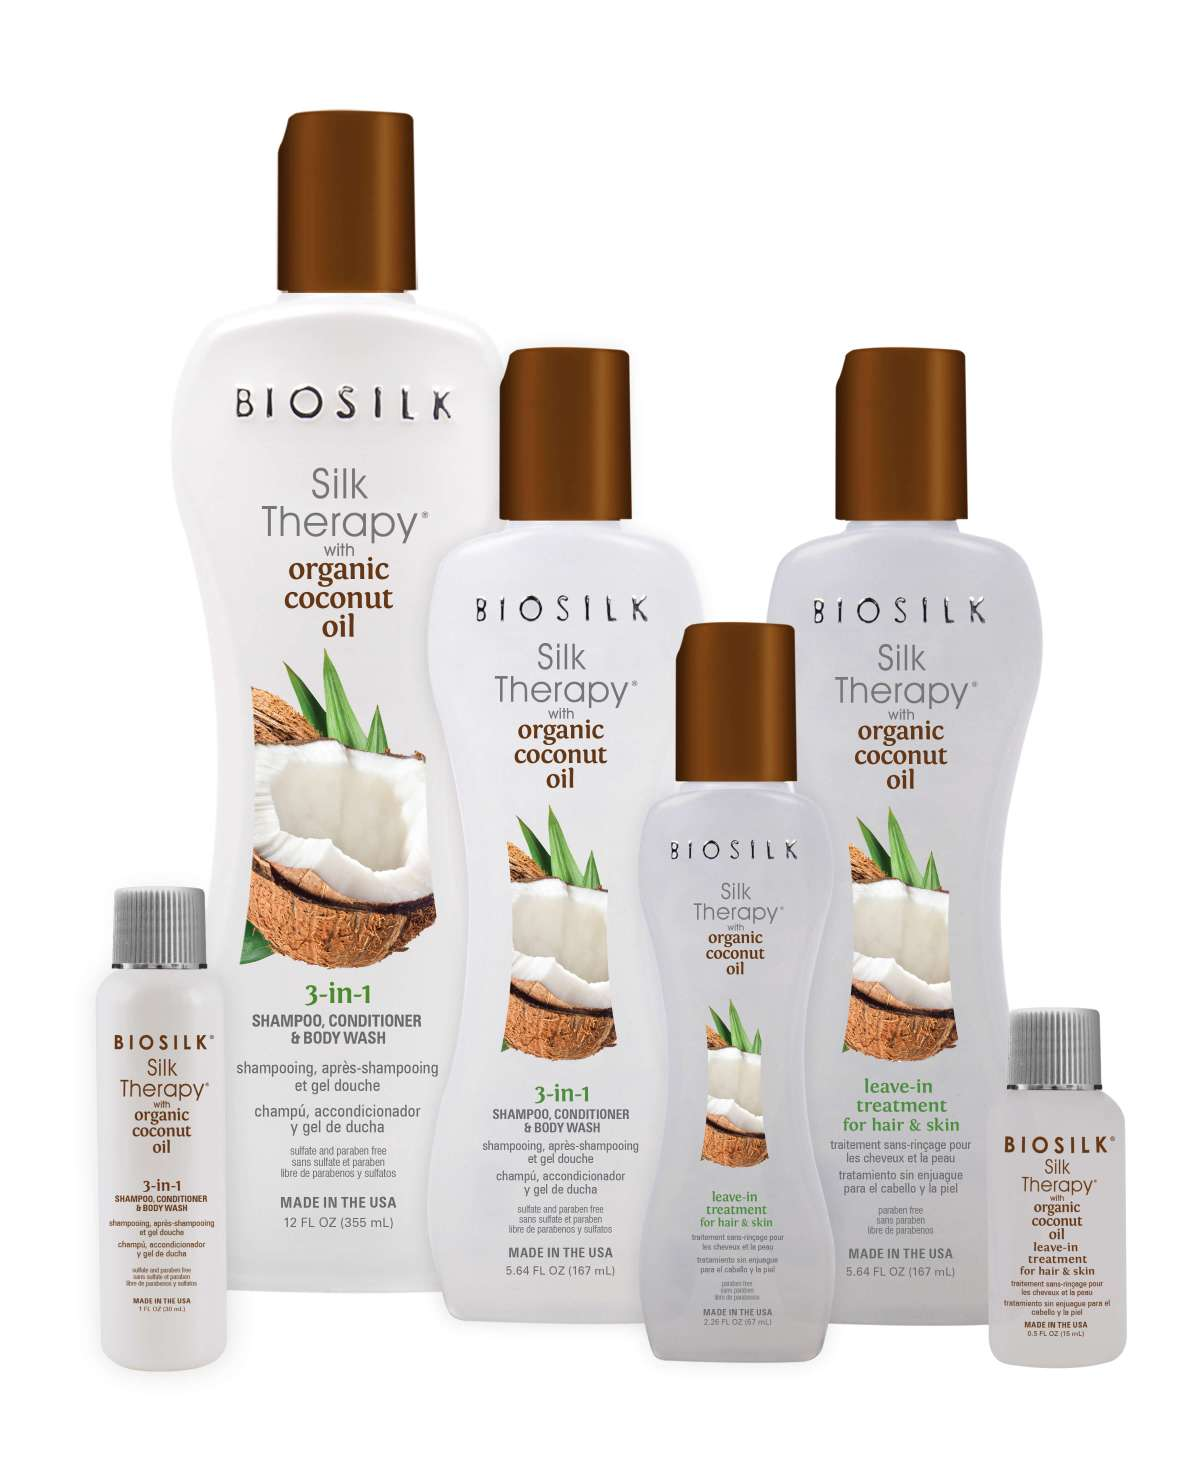 Biosilk Silk Therapy Coconut Oil Group - Biosilk Organic Coconut Oil